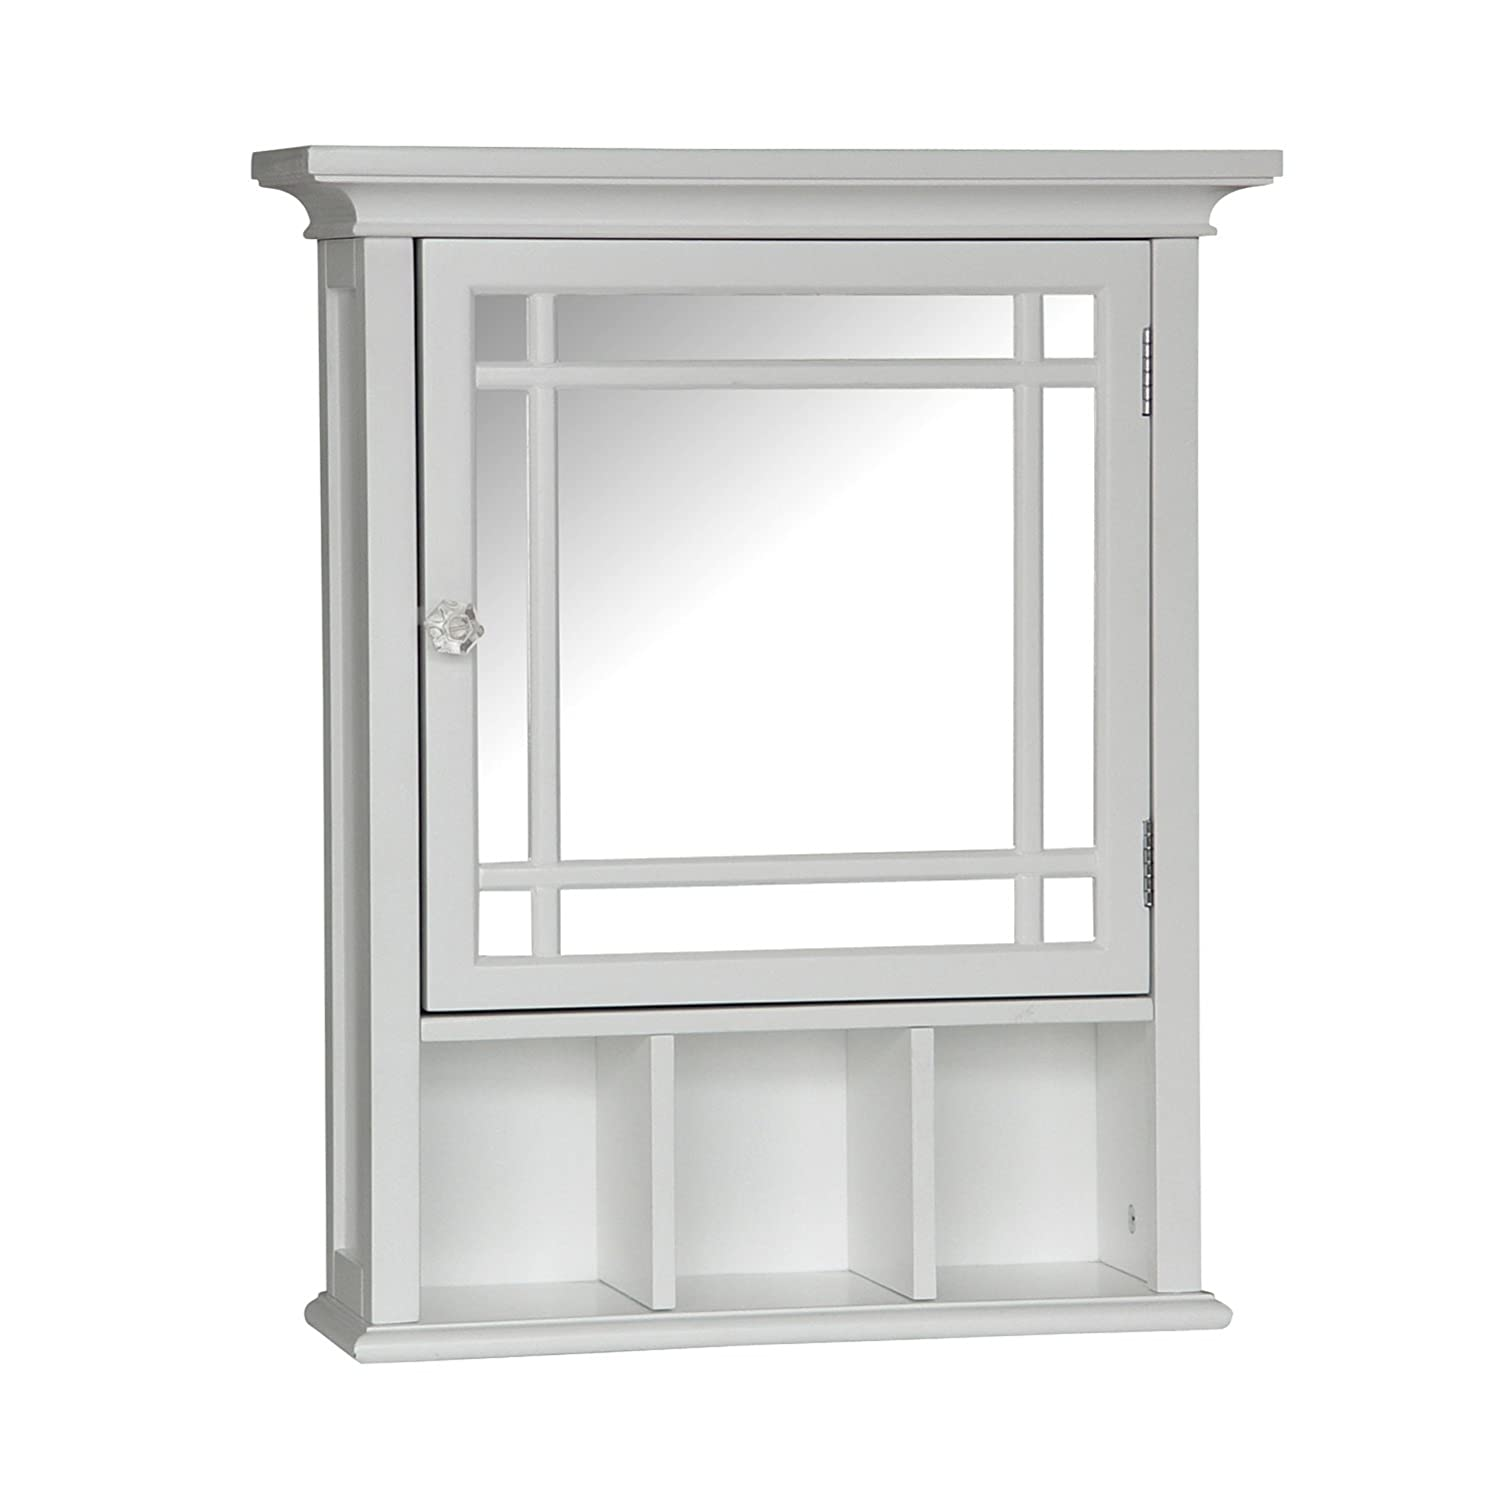 Built in bathroom medicine cabinets - Amazoncom Elegant Home Fashions Neal Collection Mirrored Medicine Cabinet White Kitchen U0026 Dining